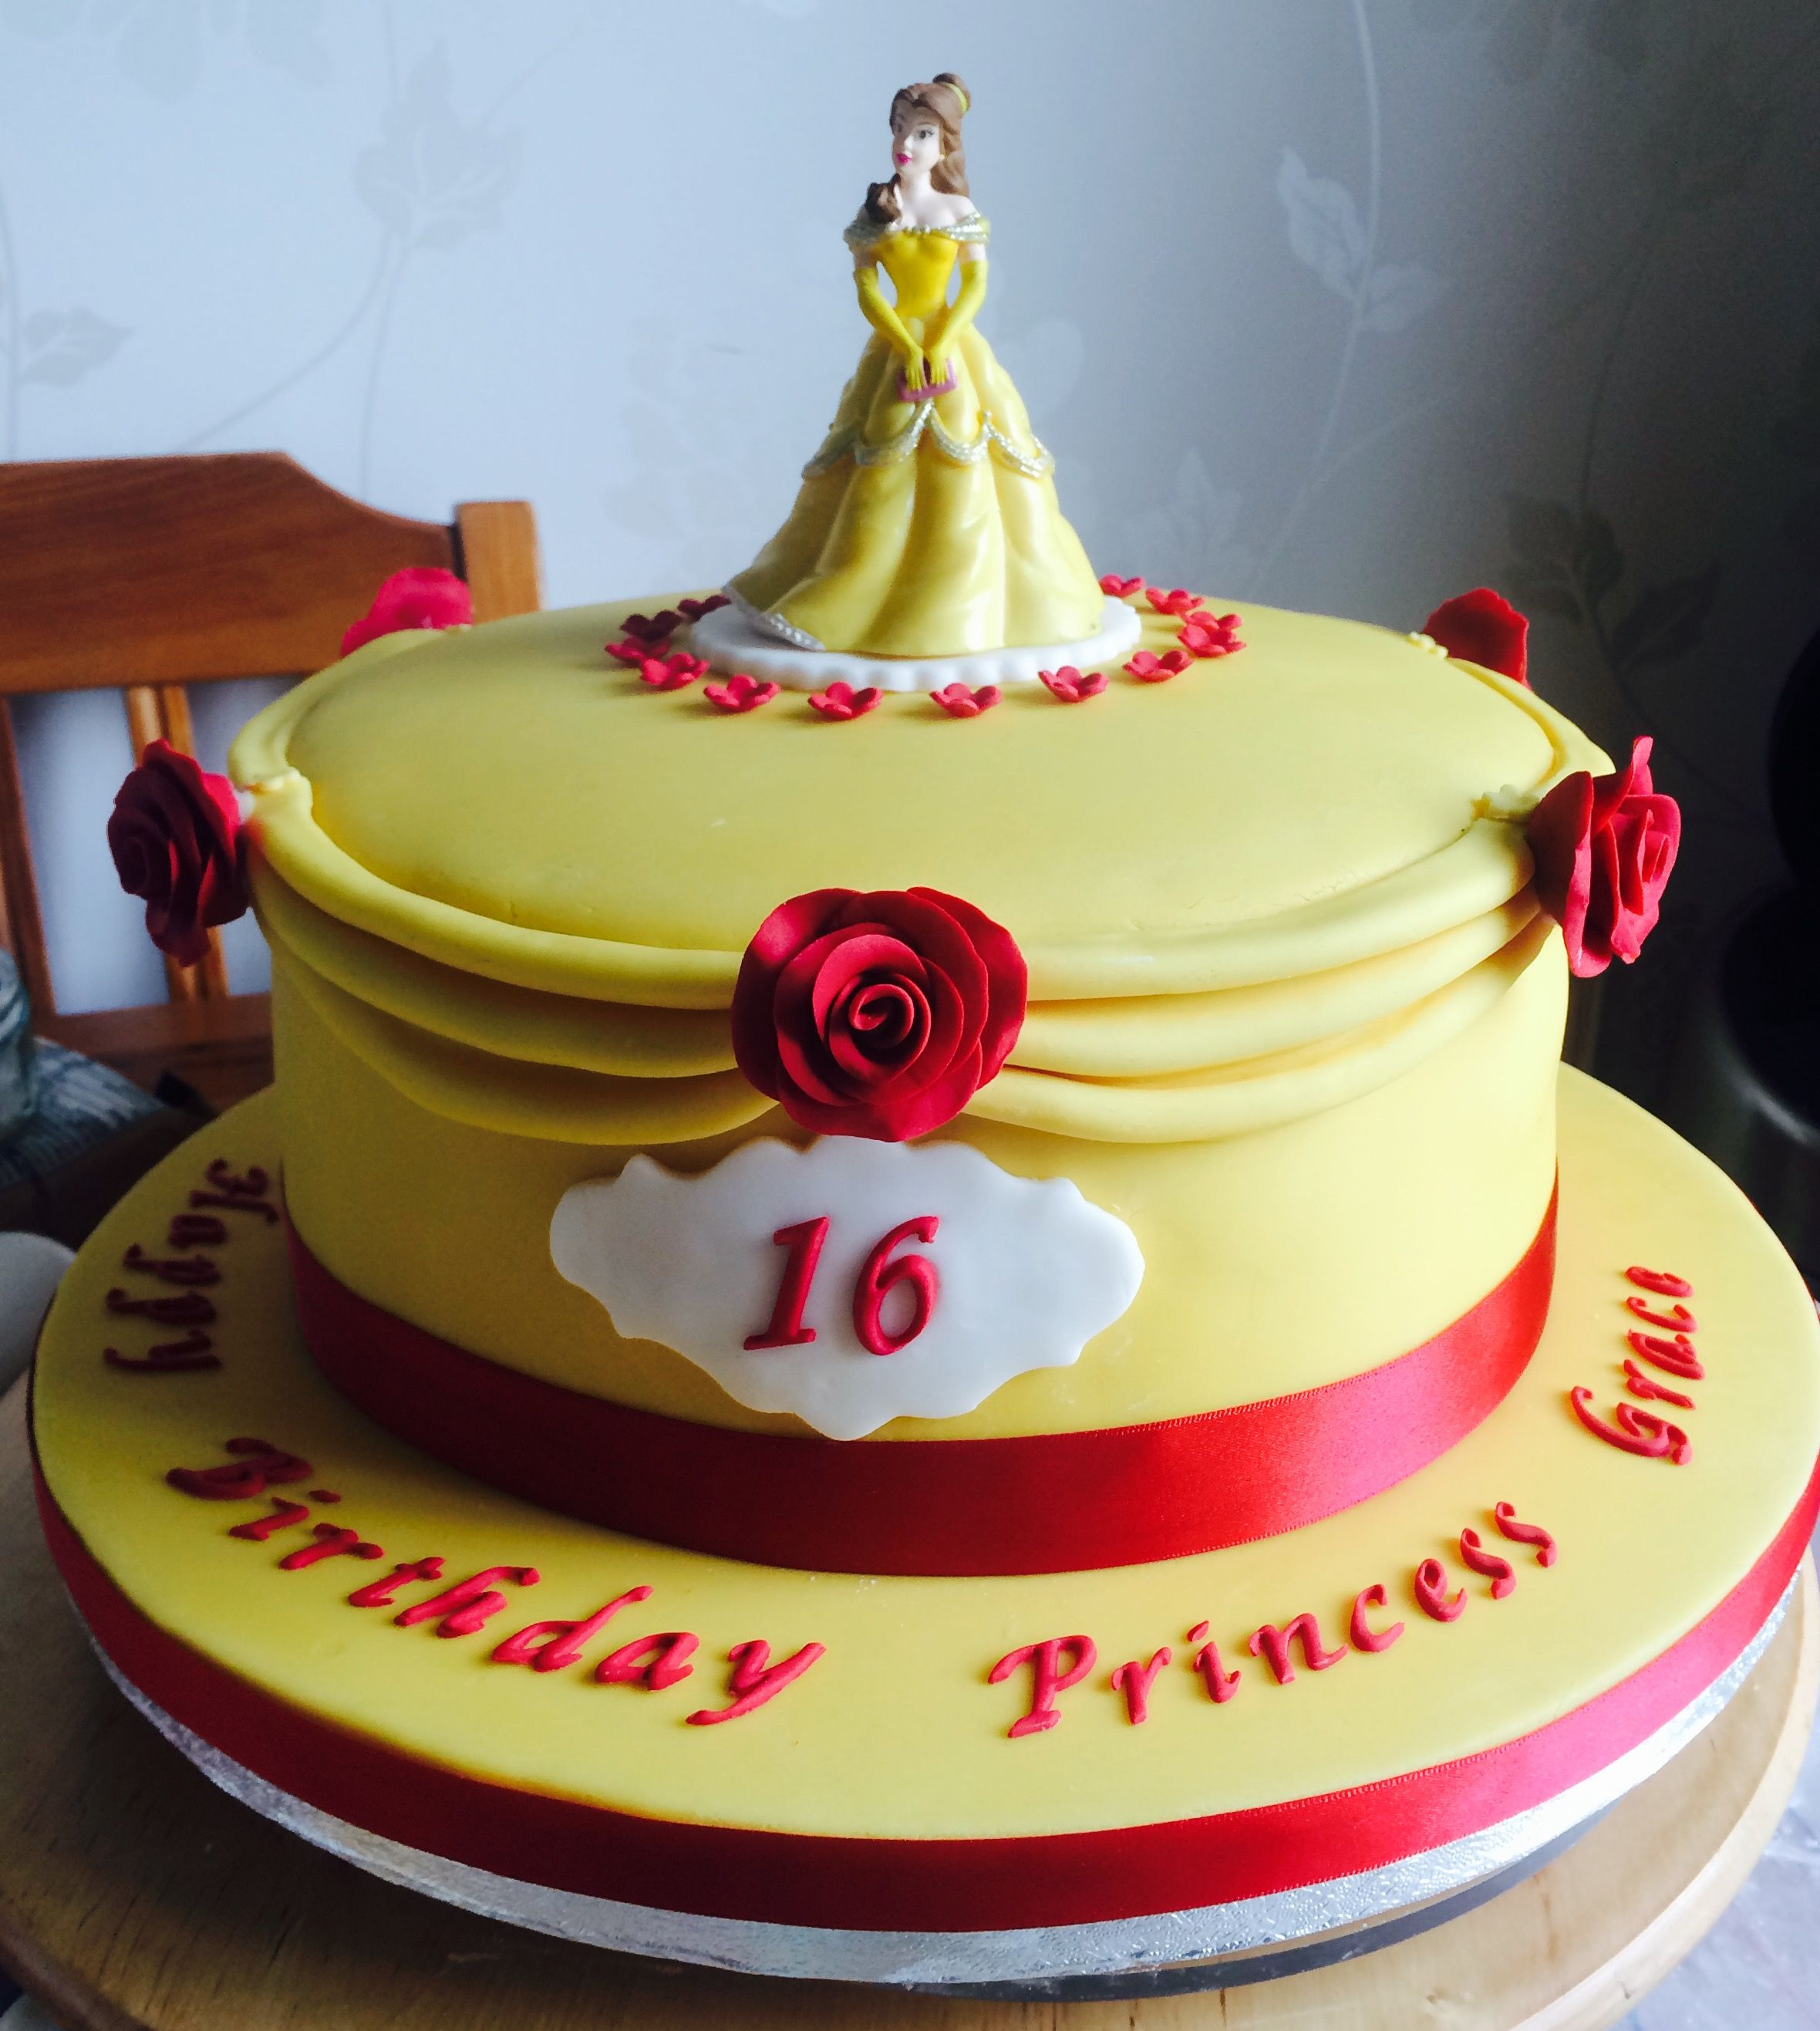 A Belle themed cake Beauty and the Beast Disney Princess